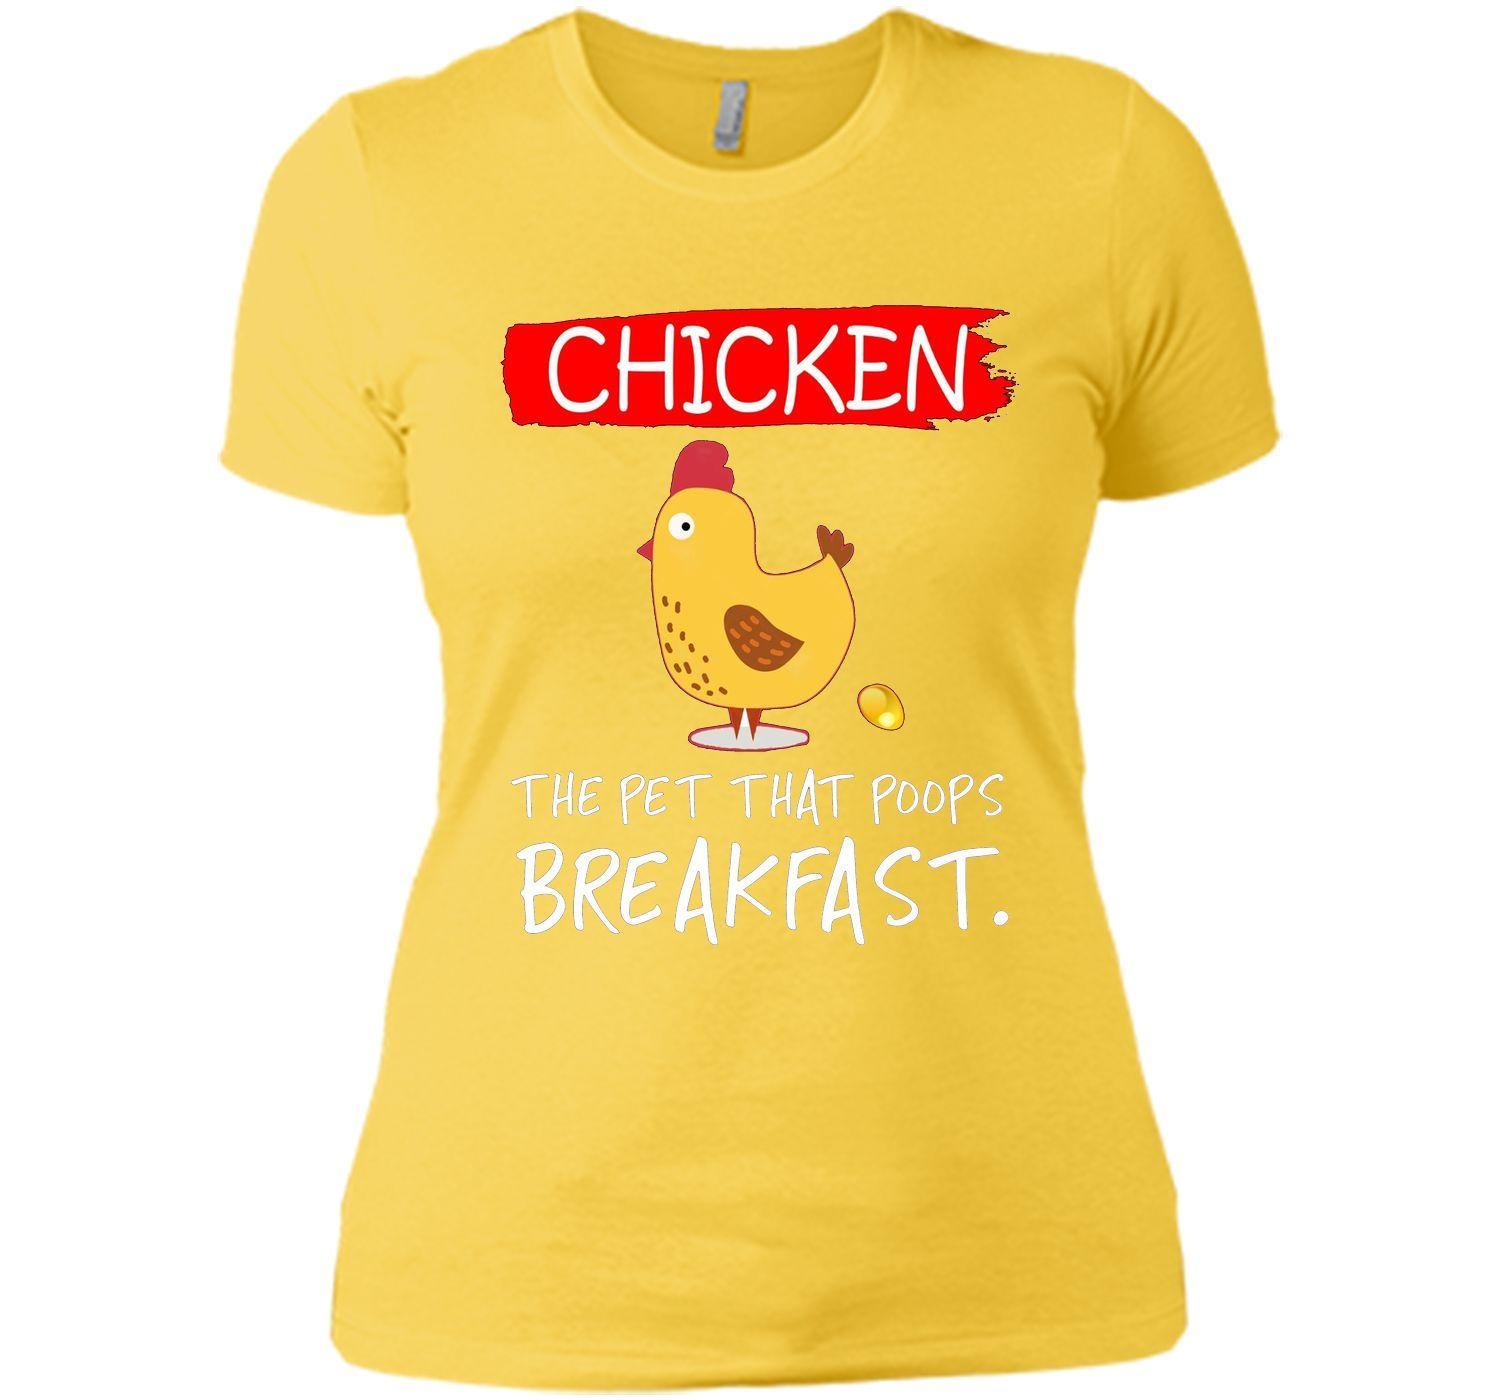 Chicken the pet that poops breakfast funny T-shirt